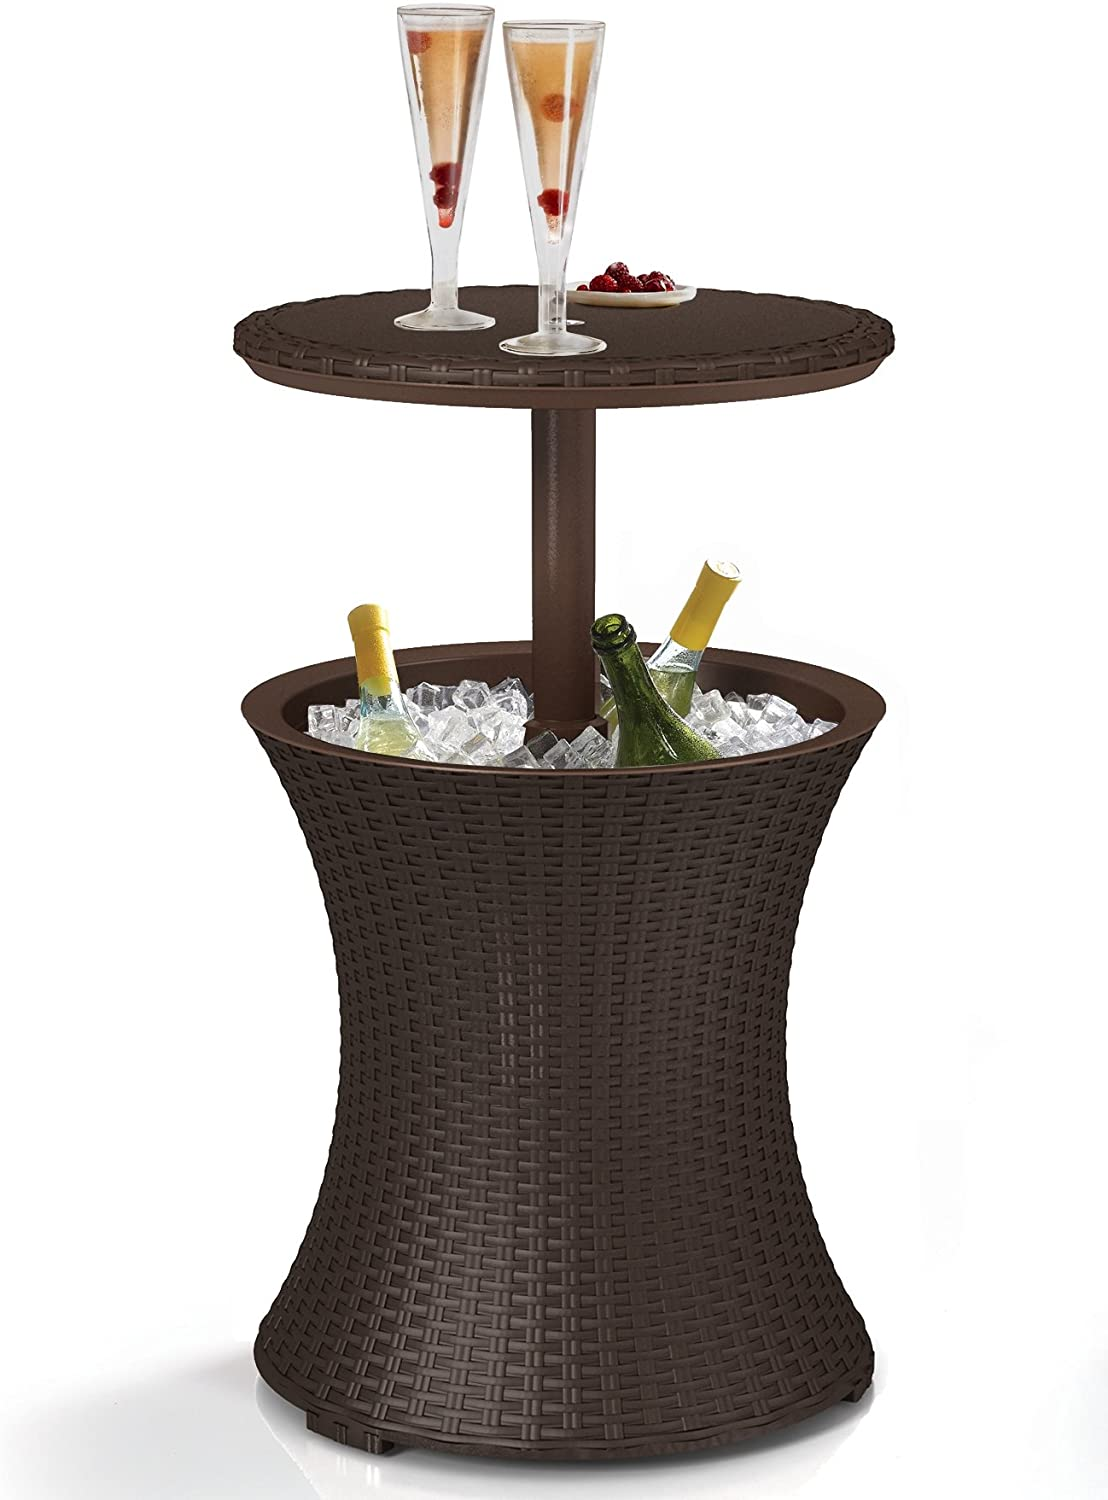 Keter Pacific Cool Bar Outdoor Patio Table Cooler